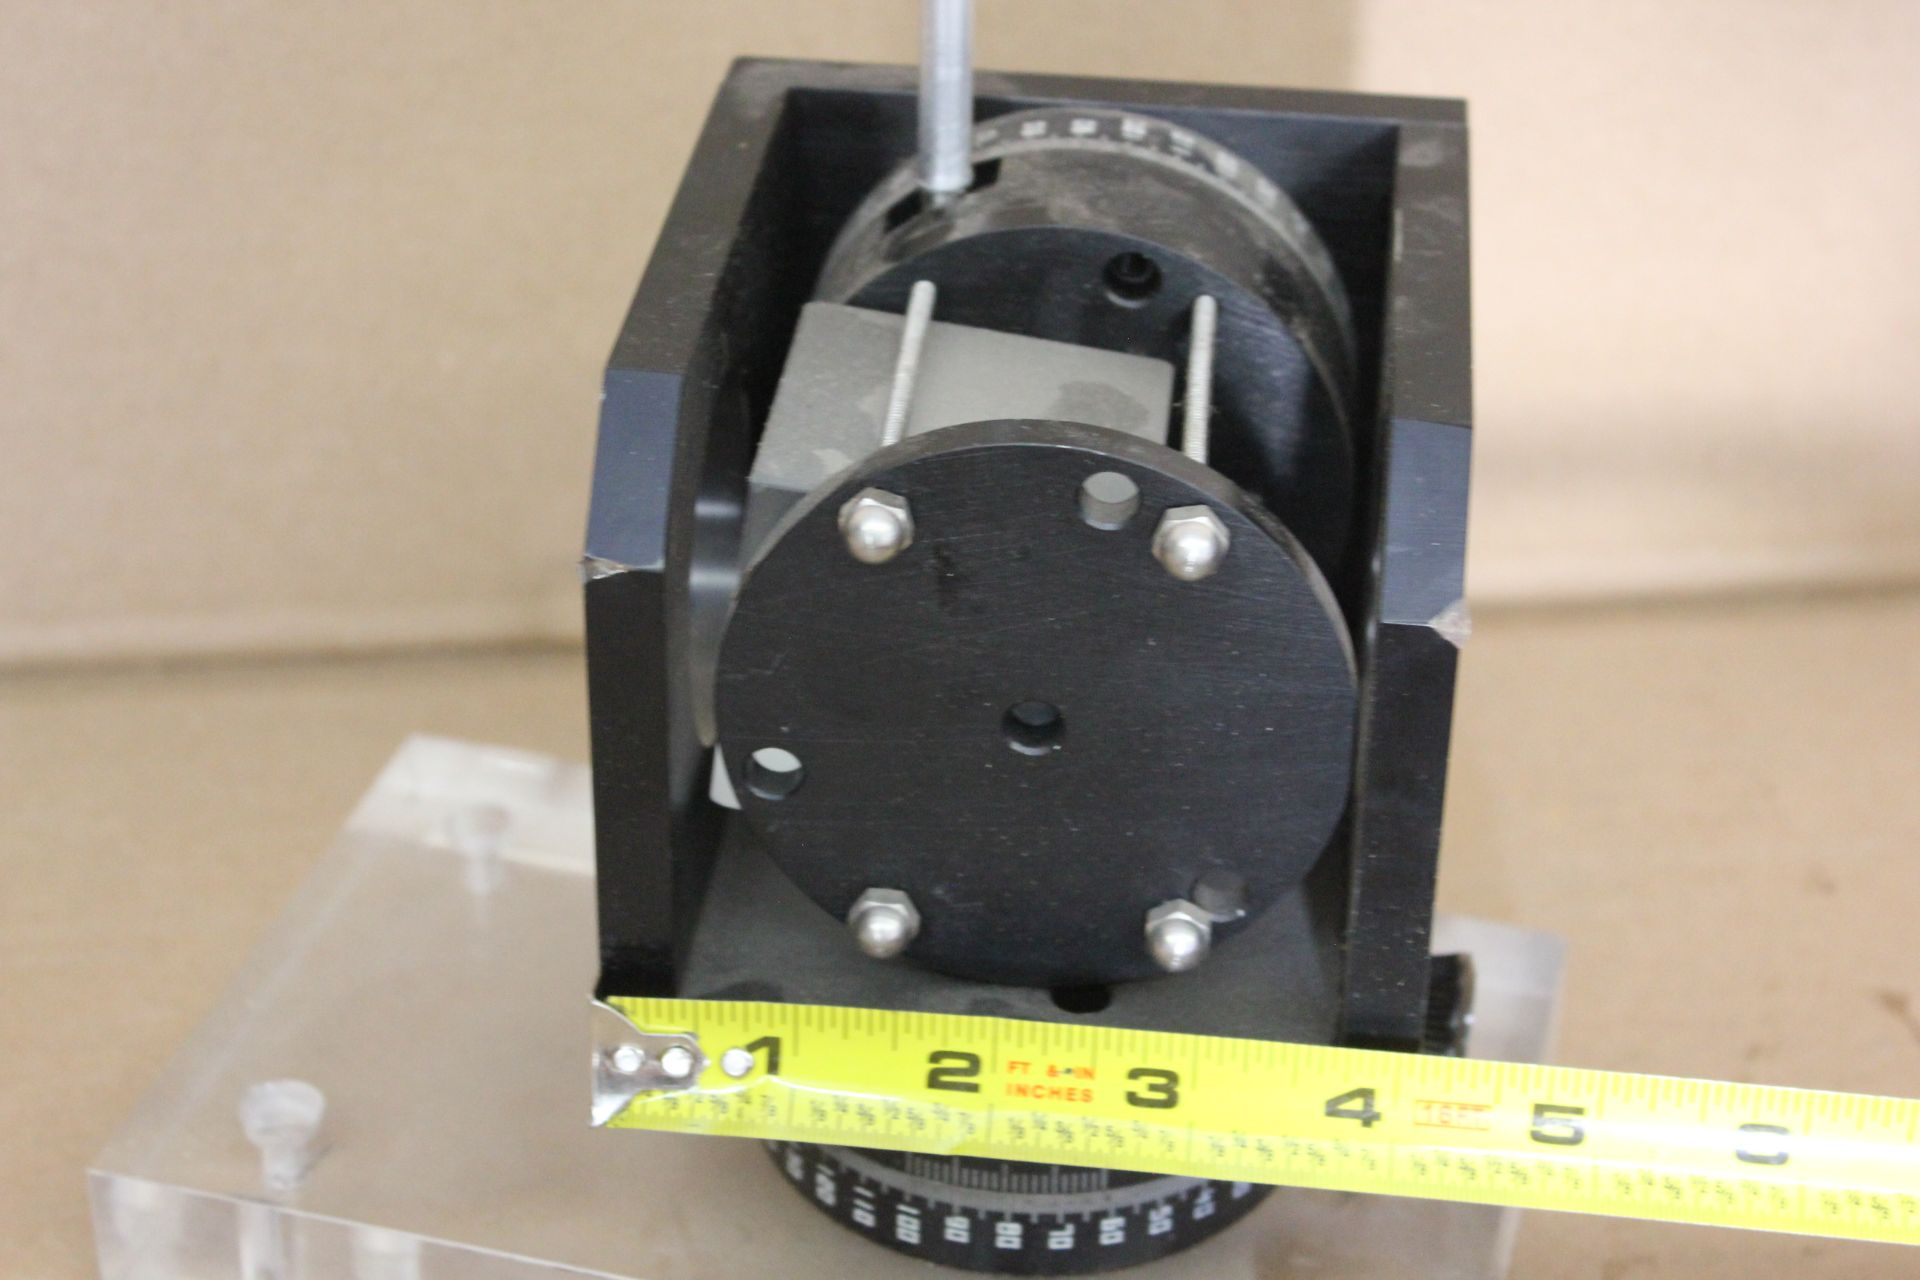 LAB LASER OPTIC ASSEMBLY WITH ROTATION STAGES - Image 2 of 3